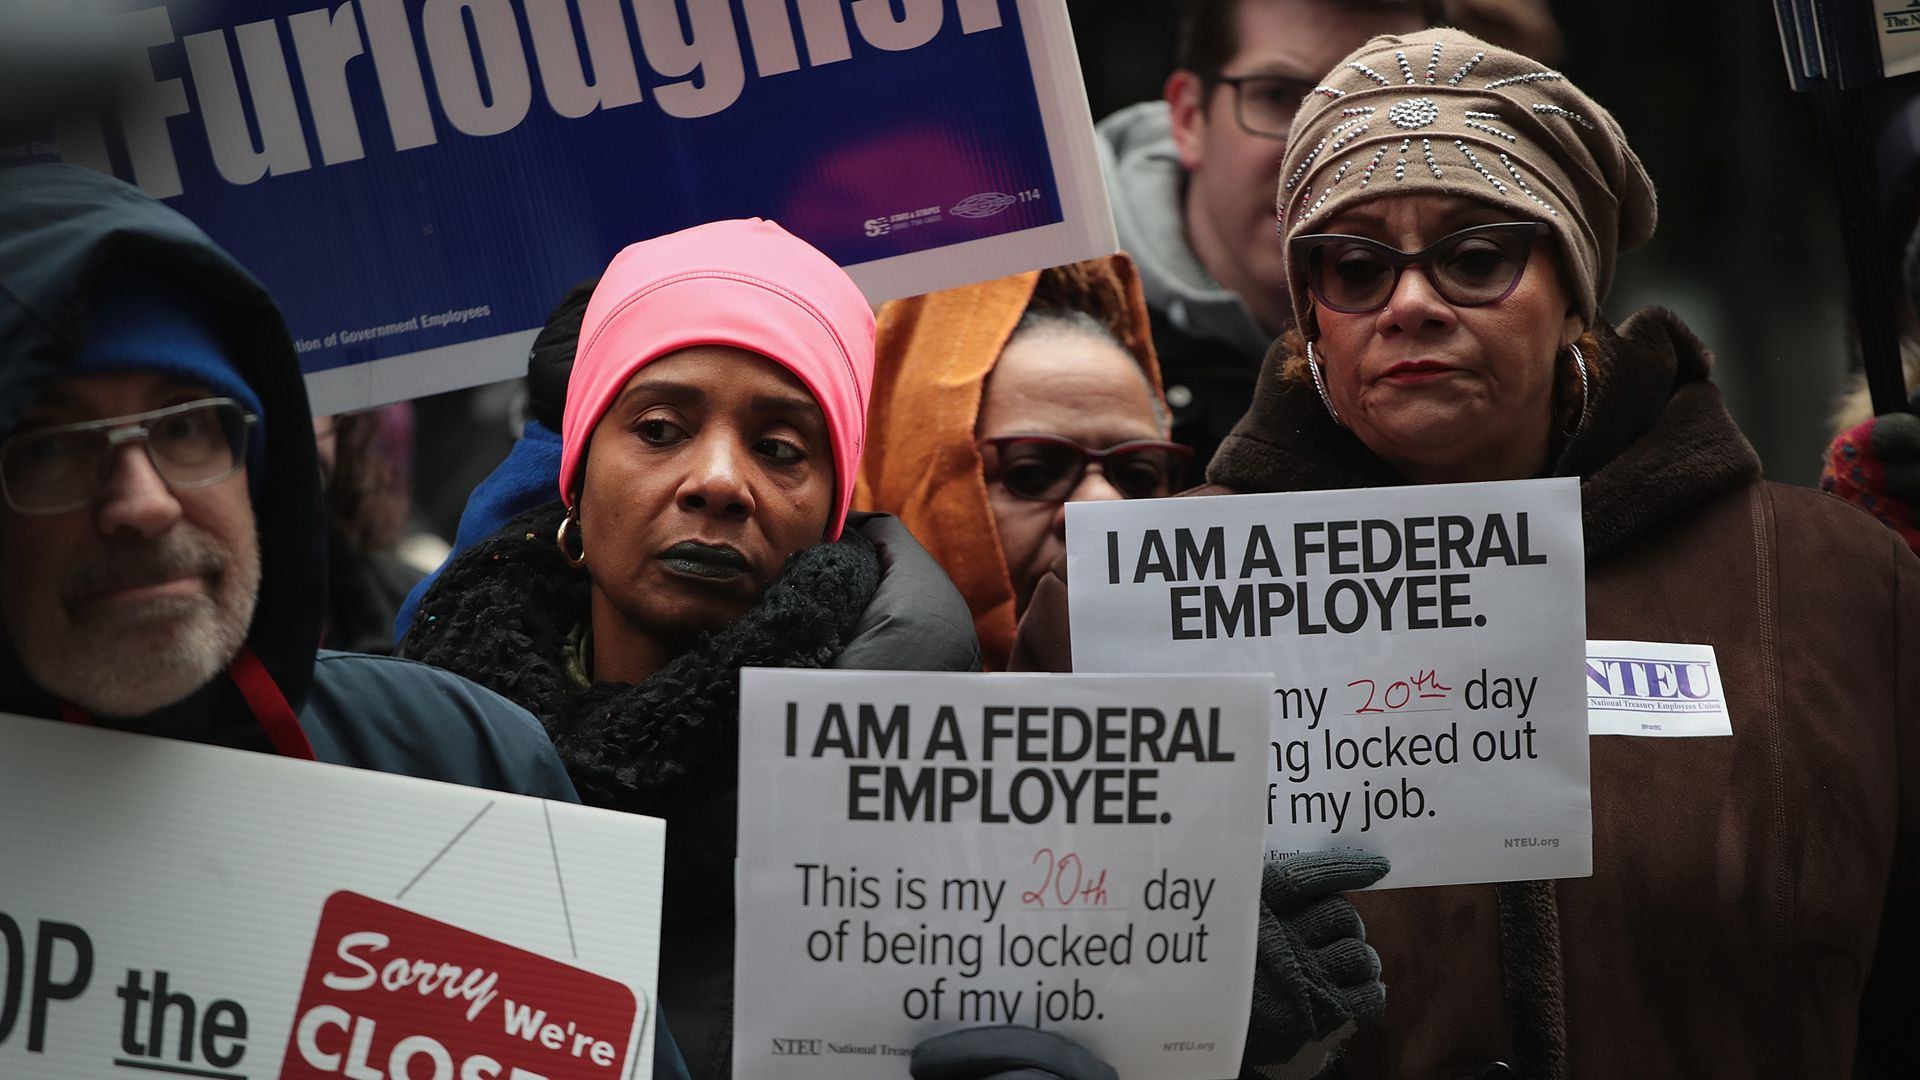 Government workers protest the government shutdown during a demonstration in the Federal Building Plaza last week in Chicago, Illinois.